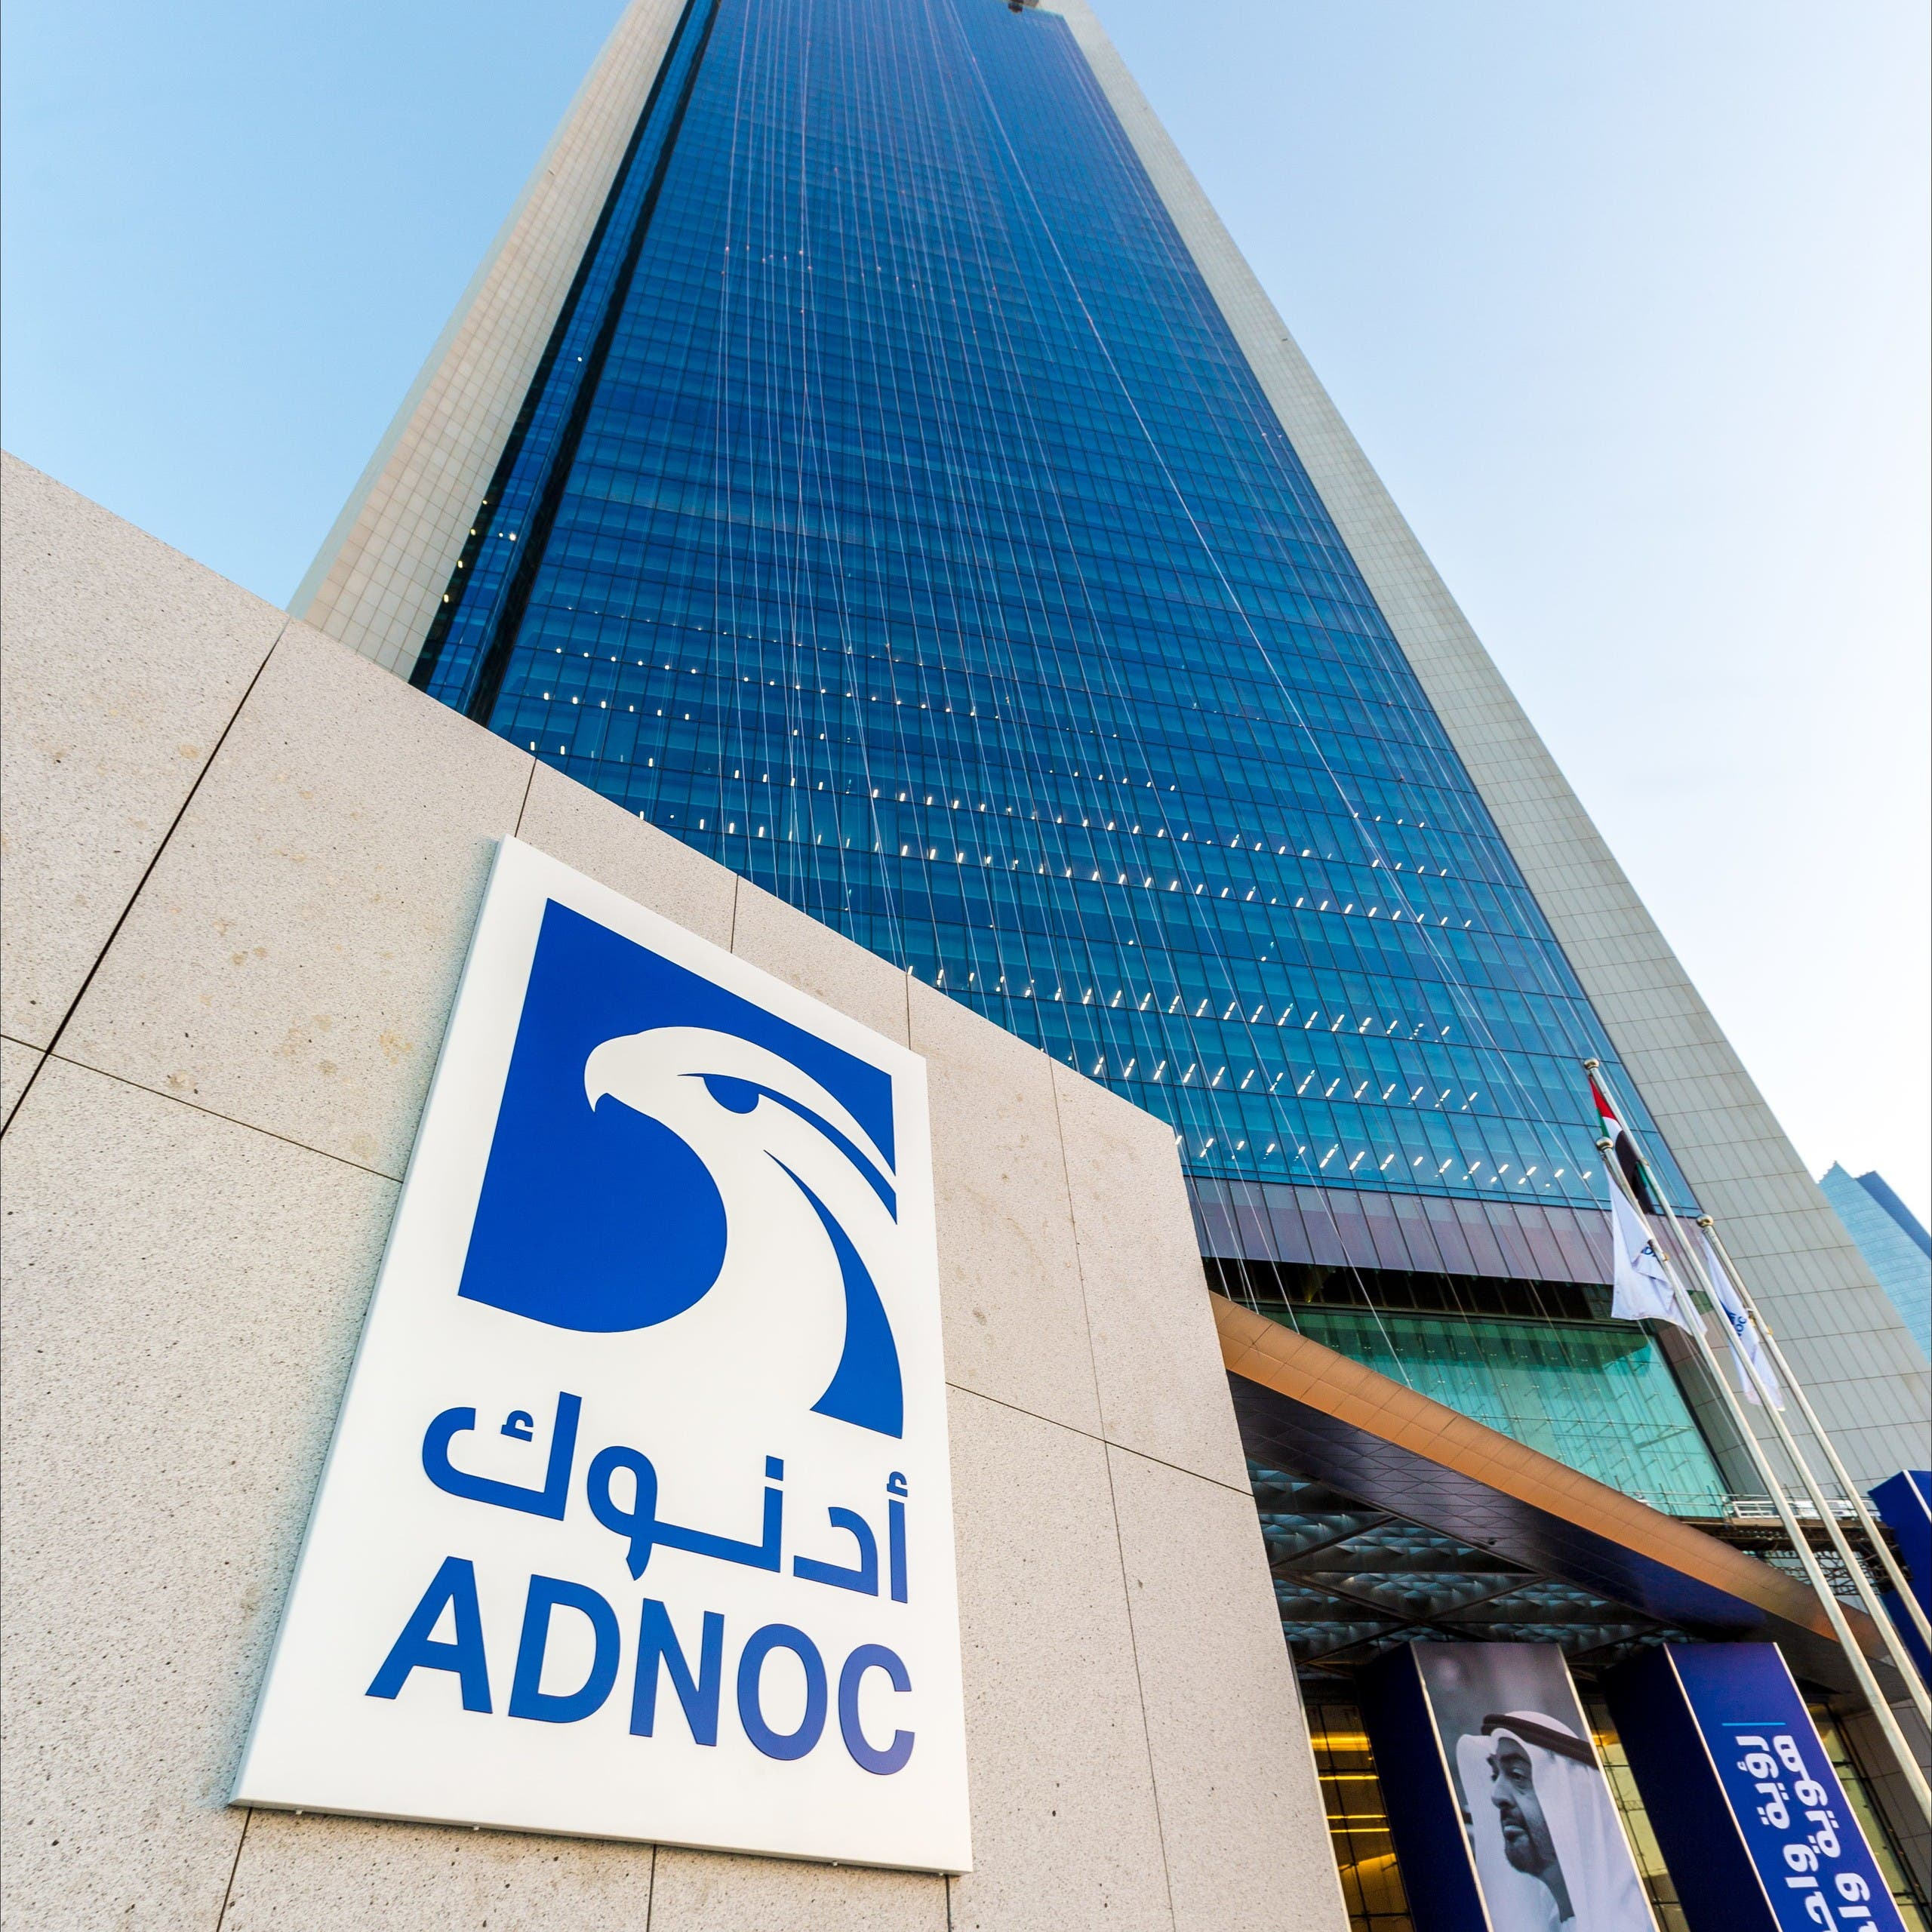 ADNOC to issue $1.2 bln in exchangeable bonds, offer more shares in distribution unit